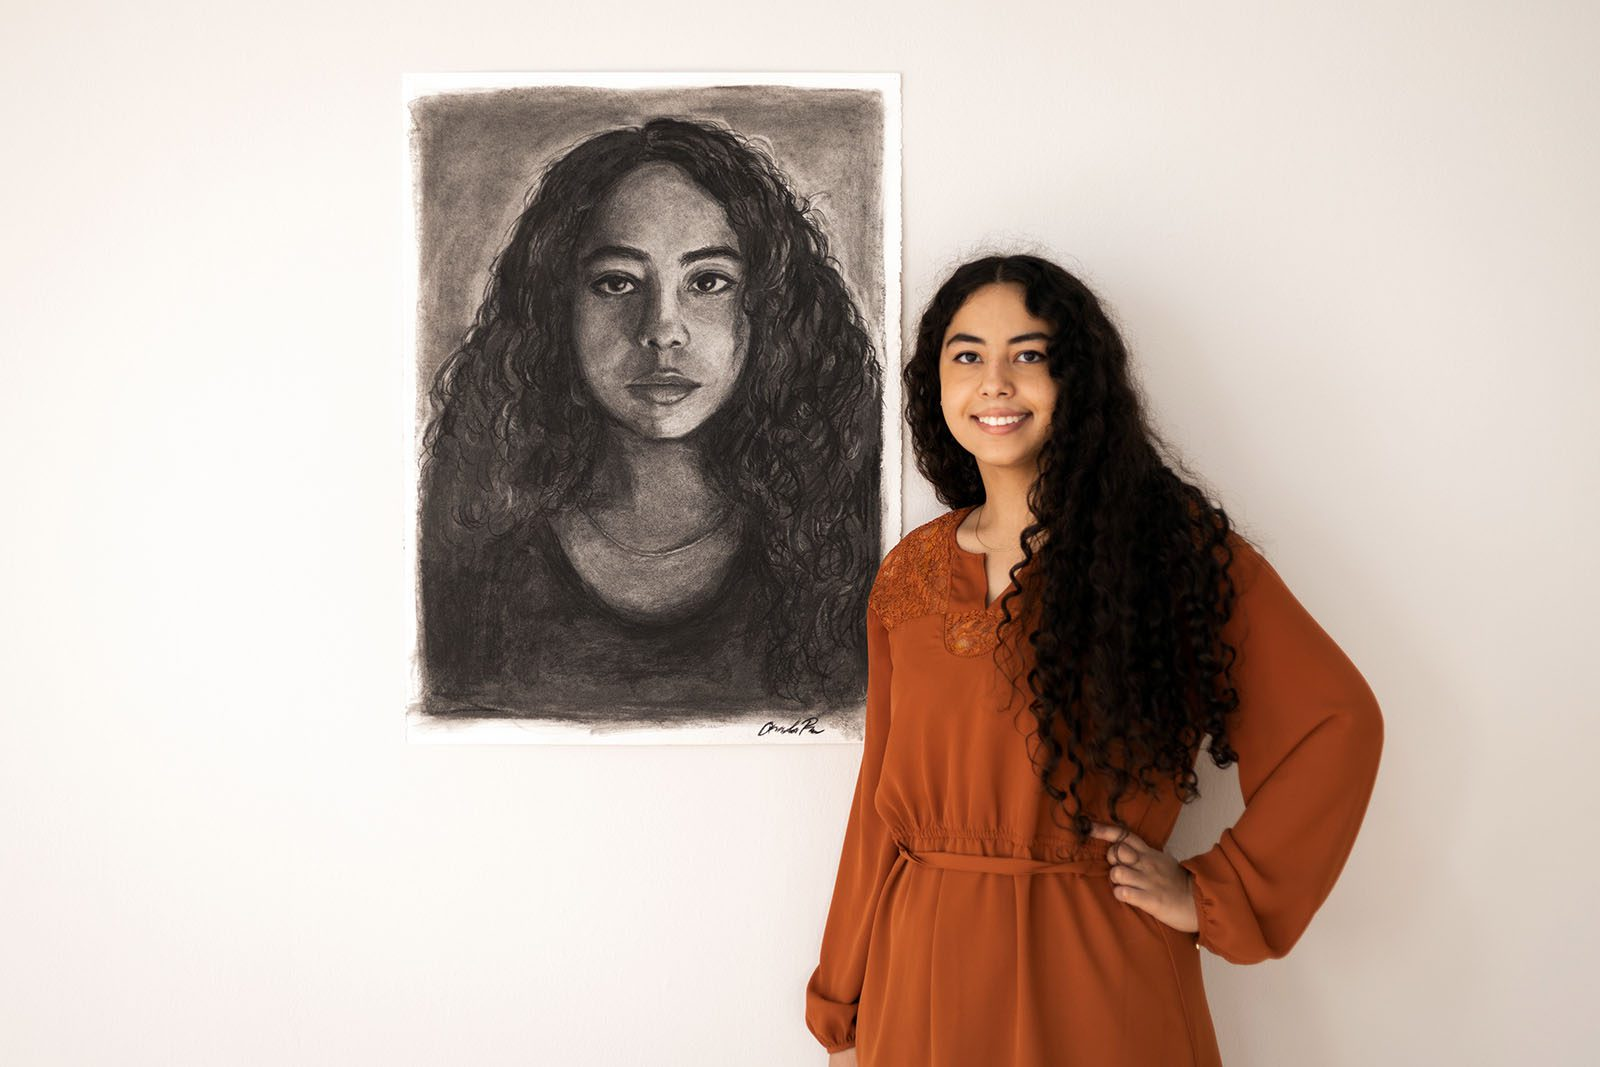 Portrait of Amanda Rose next to a black-and-white self-portrait in front of a white wall.